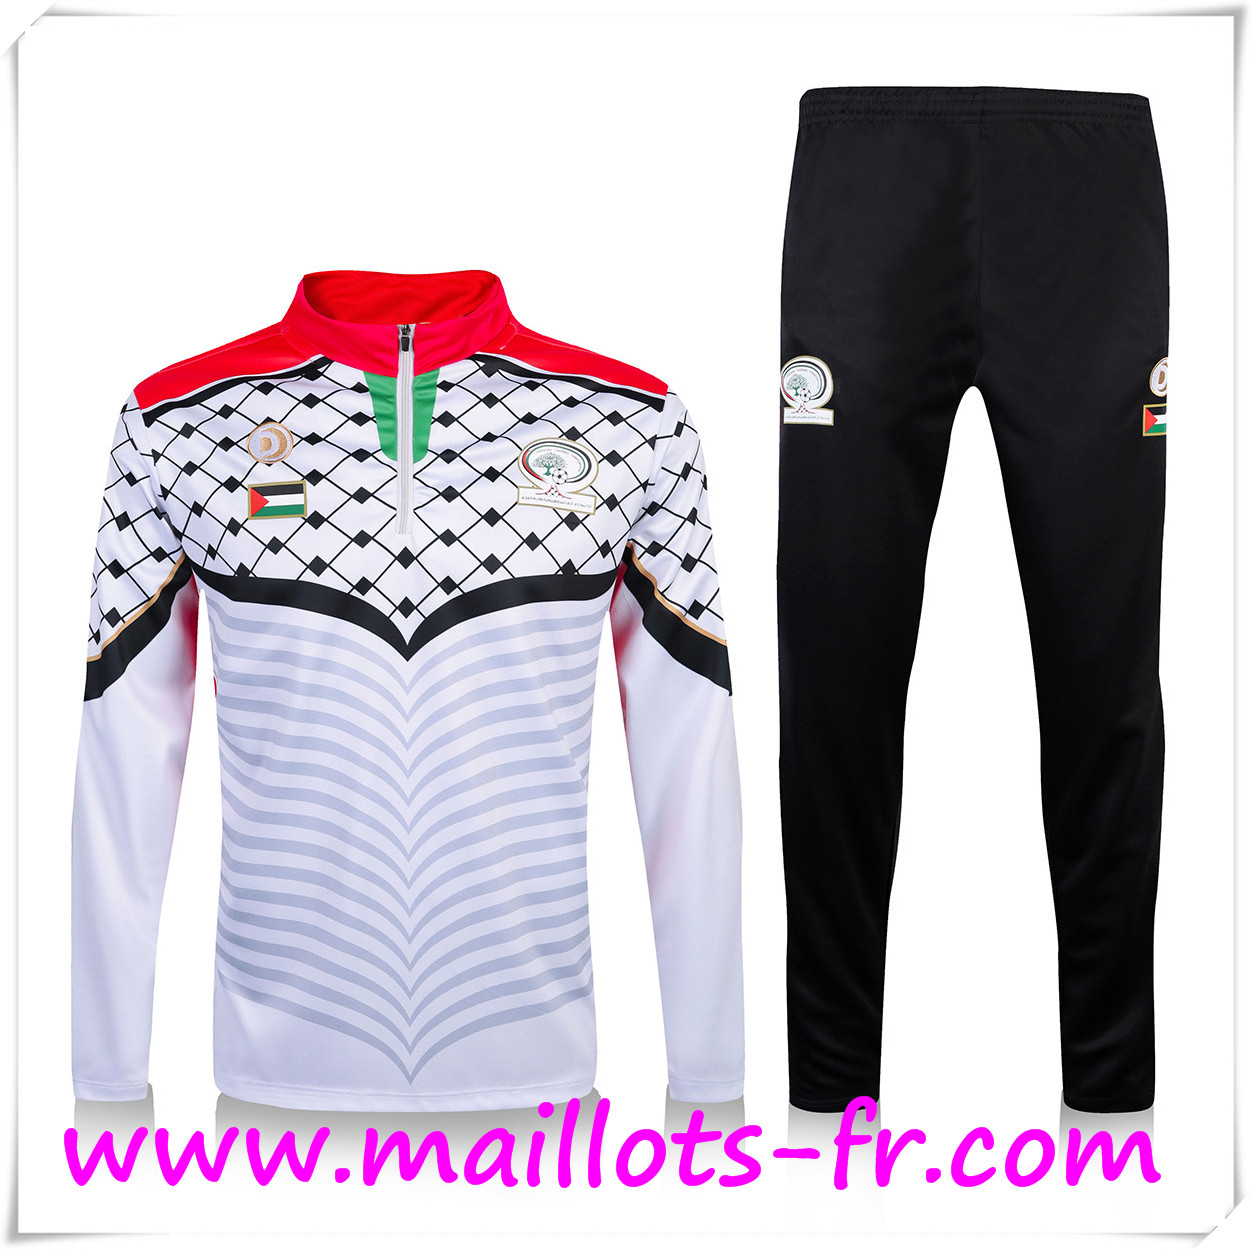 Maillot survetement nouvelle